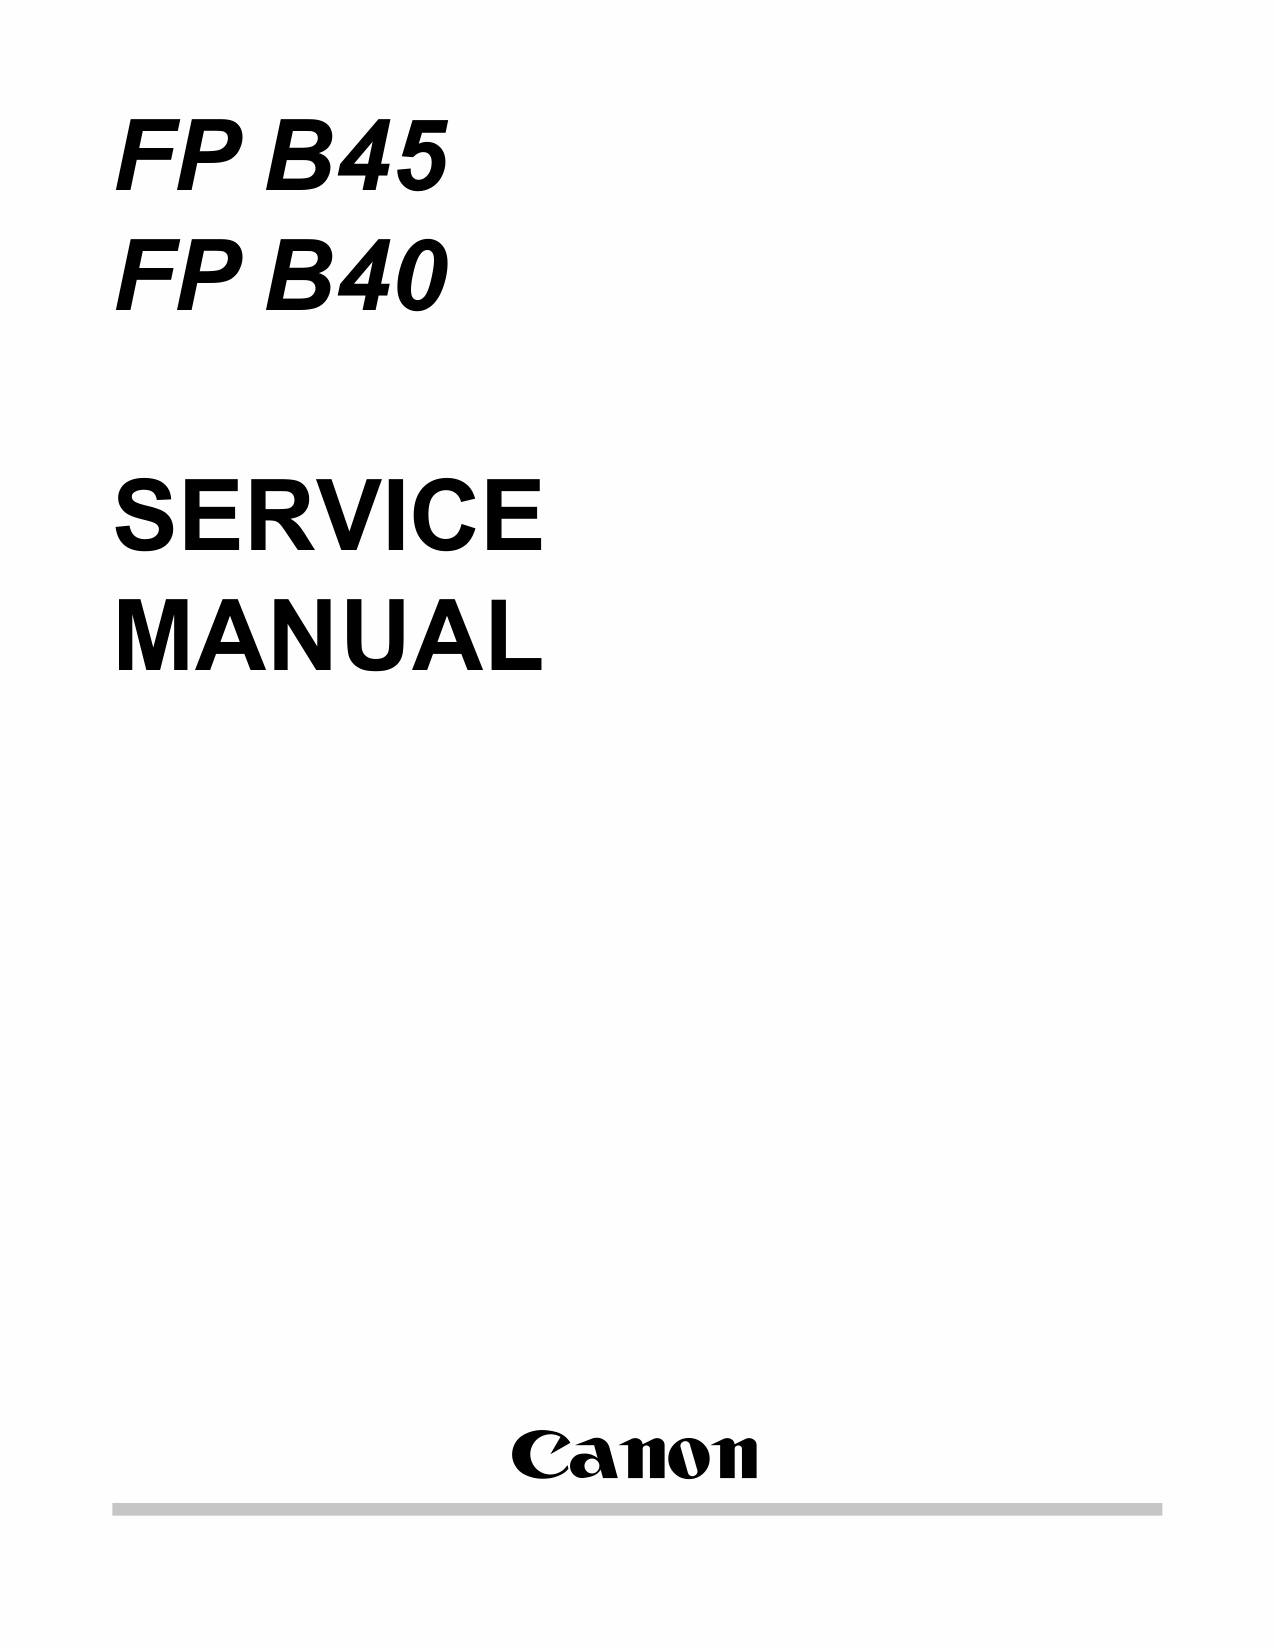 Canon FAX FP-B40 B45 Parts and Service Manual-1